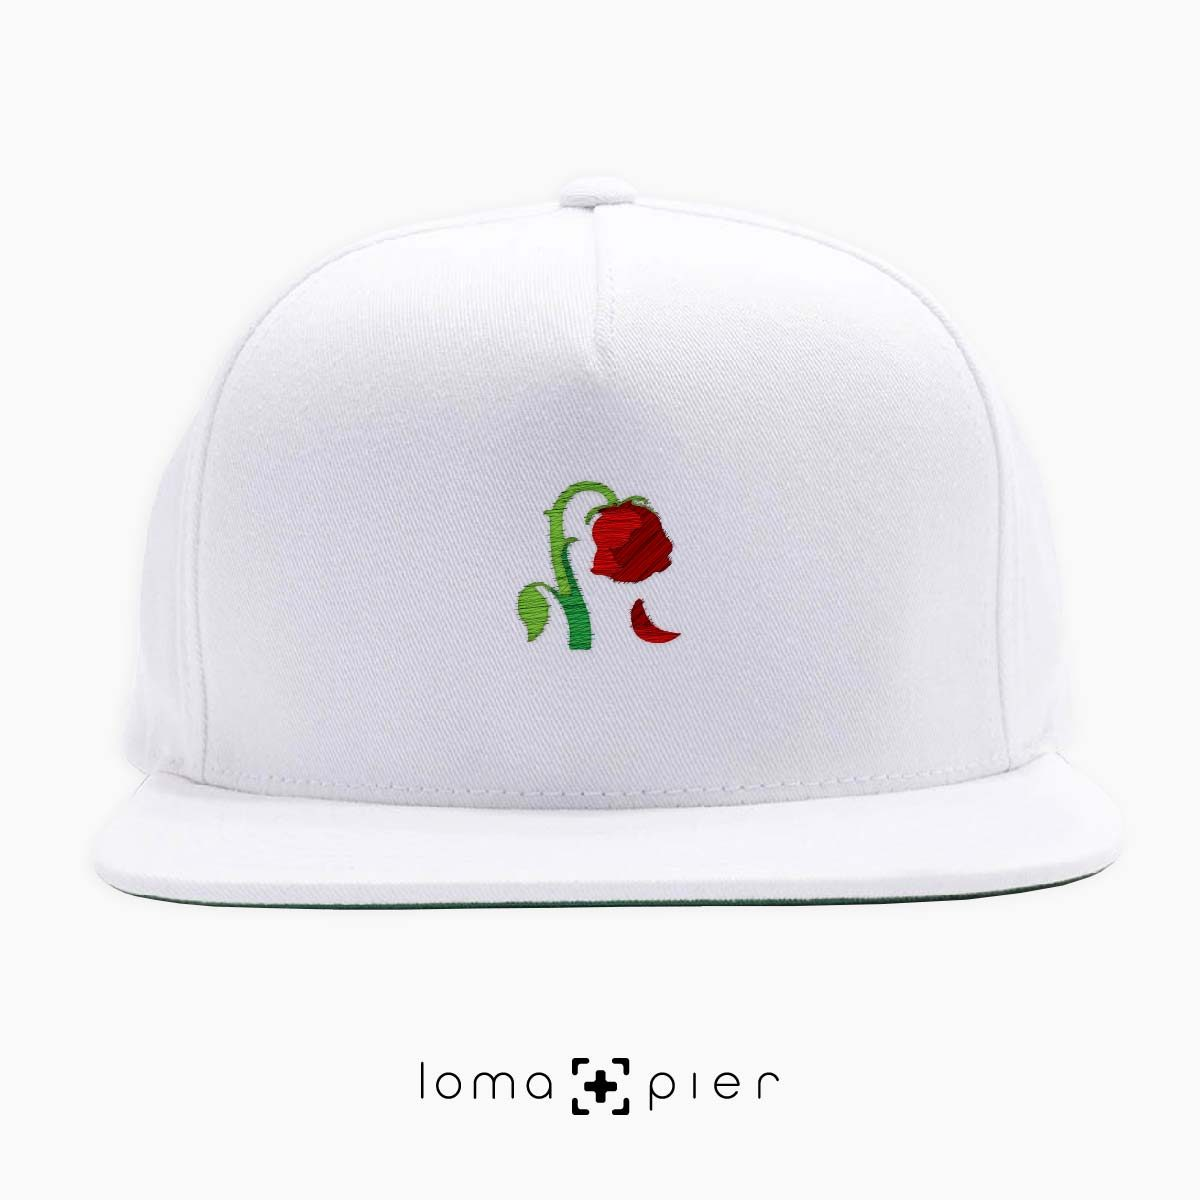 DYING ROSE EMOJI icon embroidered on a white classic snapback hat by loma+pier hat store